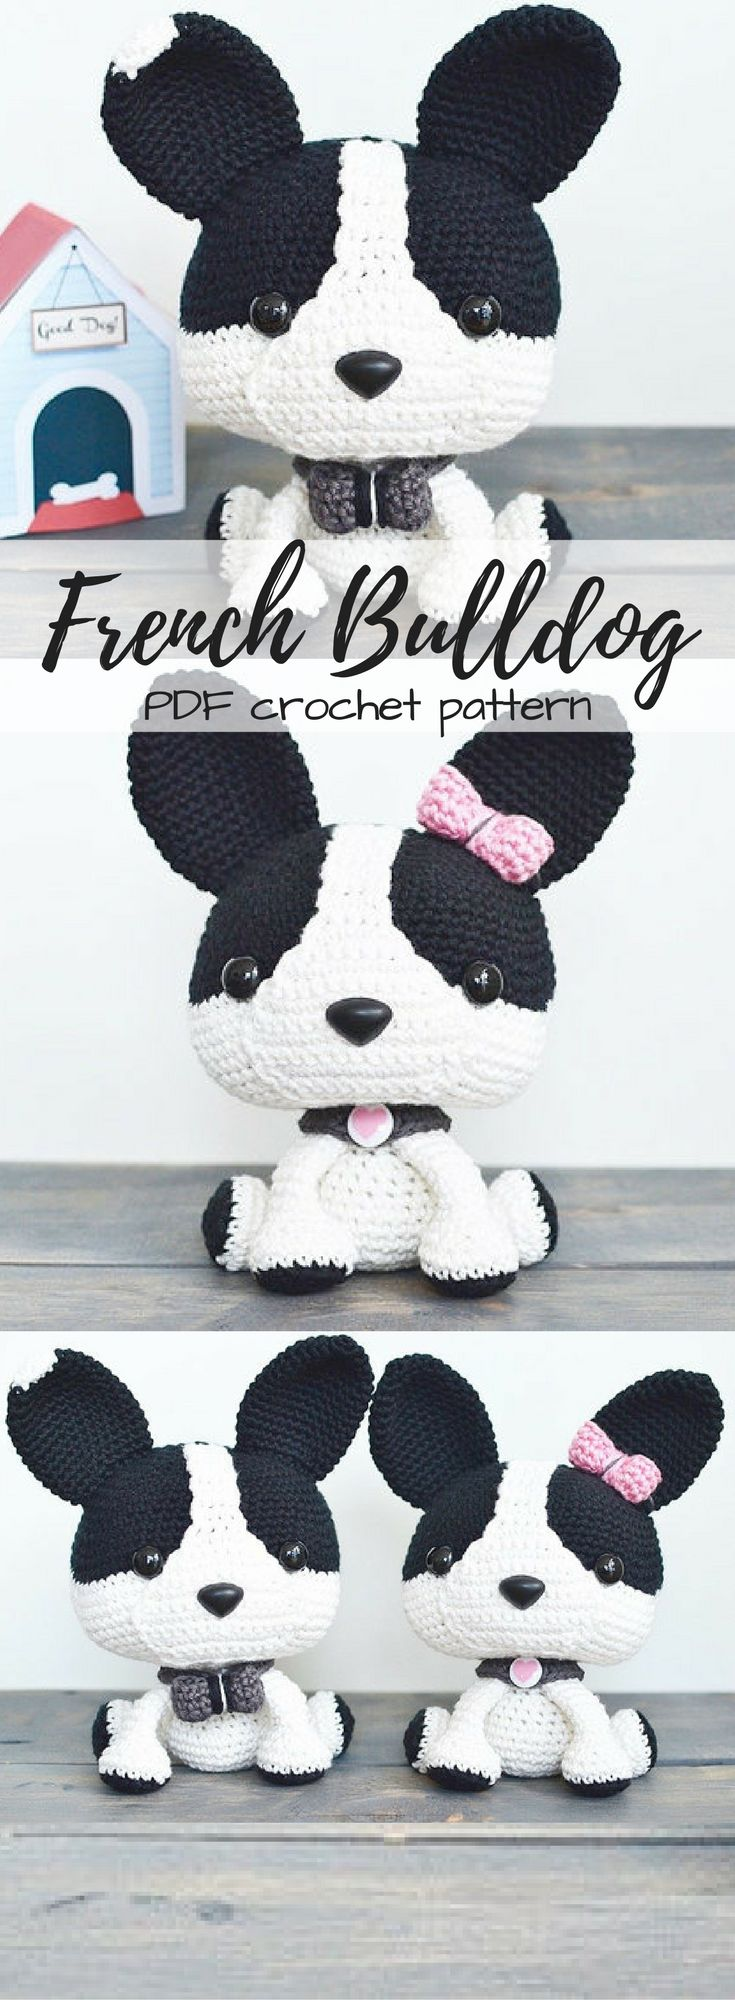 Finn the French Bulldog pdf crochet amigurumi stuffed animal dog pattern. Love this sweet little puppy to DIY with this easy to follow crochet pattern! #etsy #ad